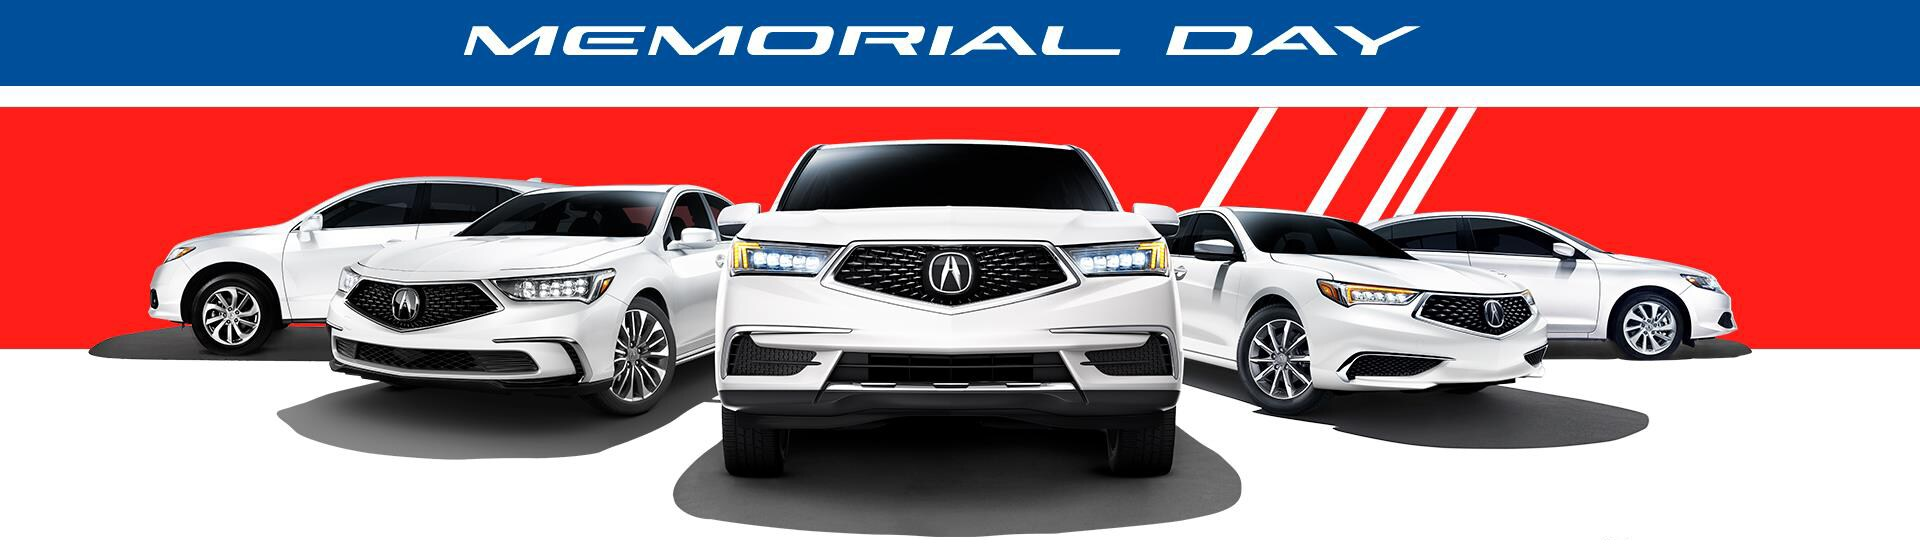 Memorial Day Speicals | Save on Memorial Day at Nalley Acura